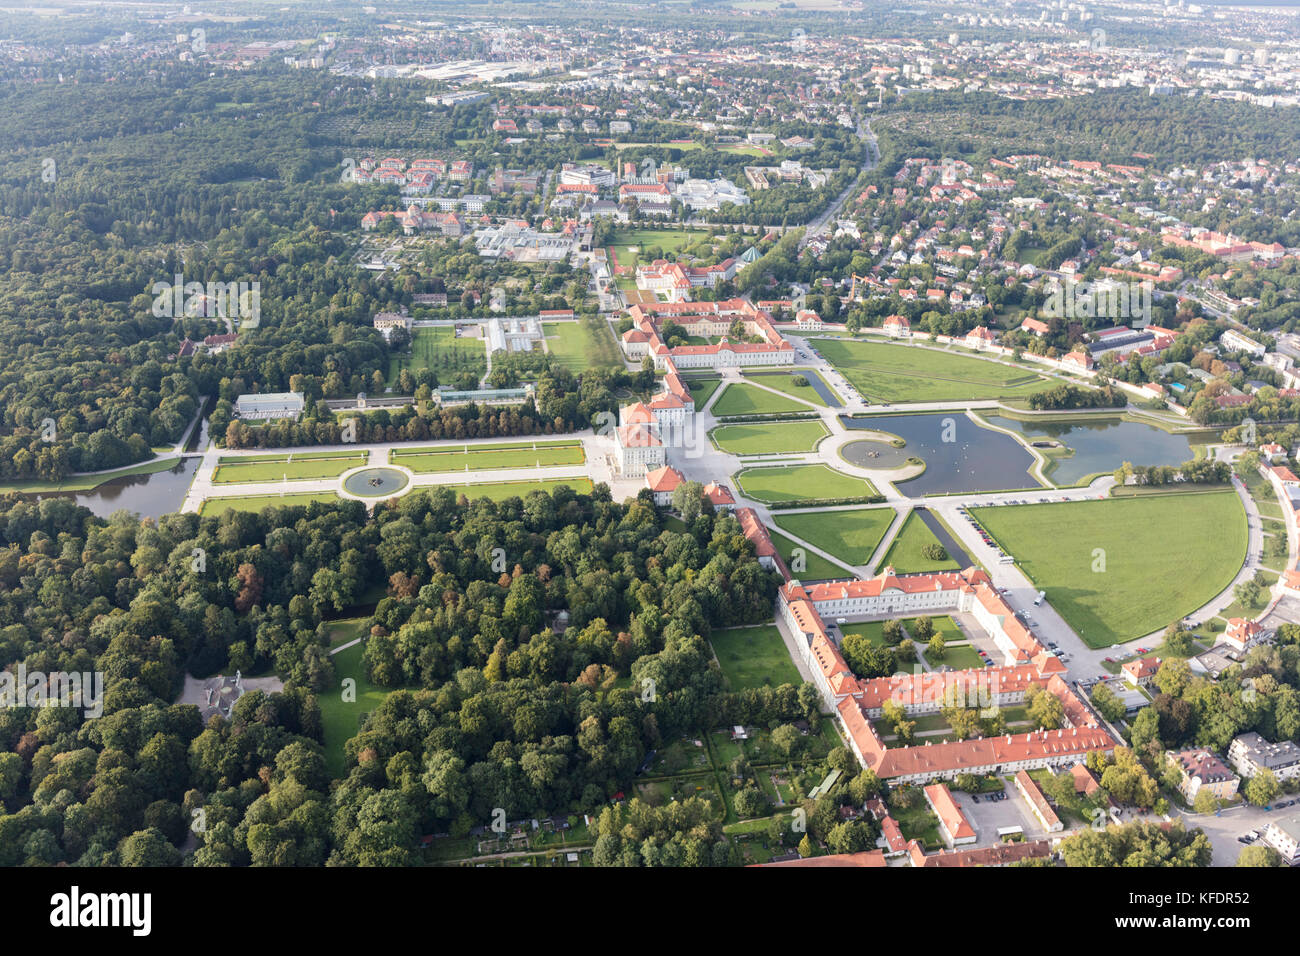 aerial view of Nymphenburg Palace (Schloss Nymphenburg), Munich, Bavaria, Germany - Stock Image